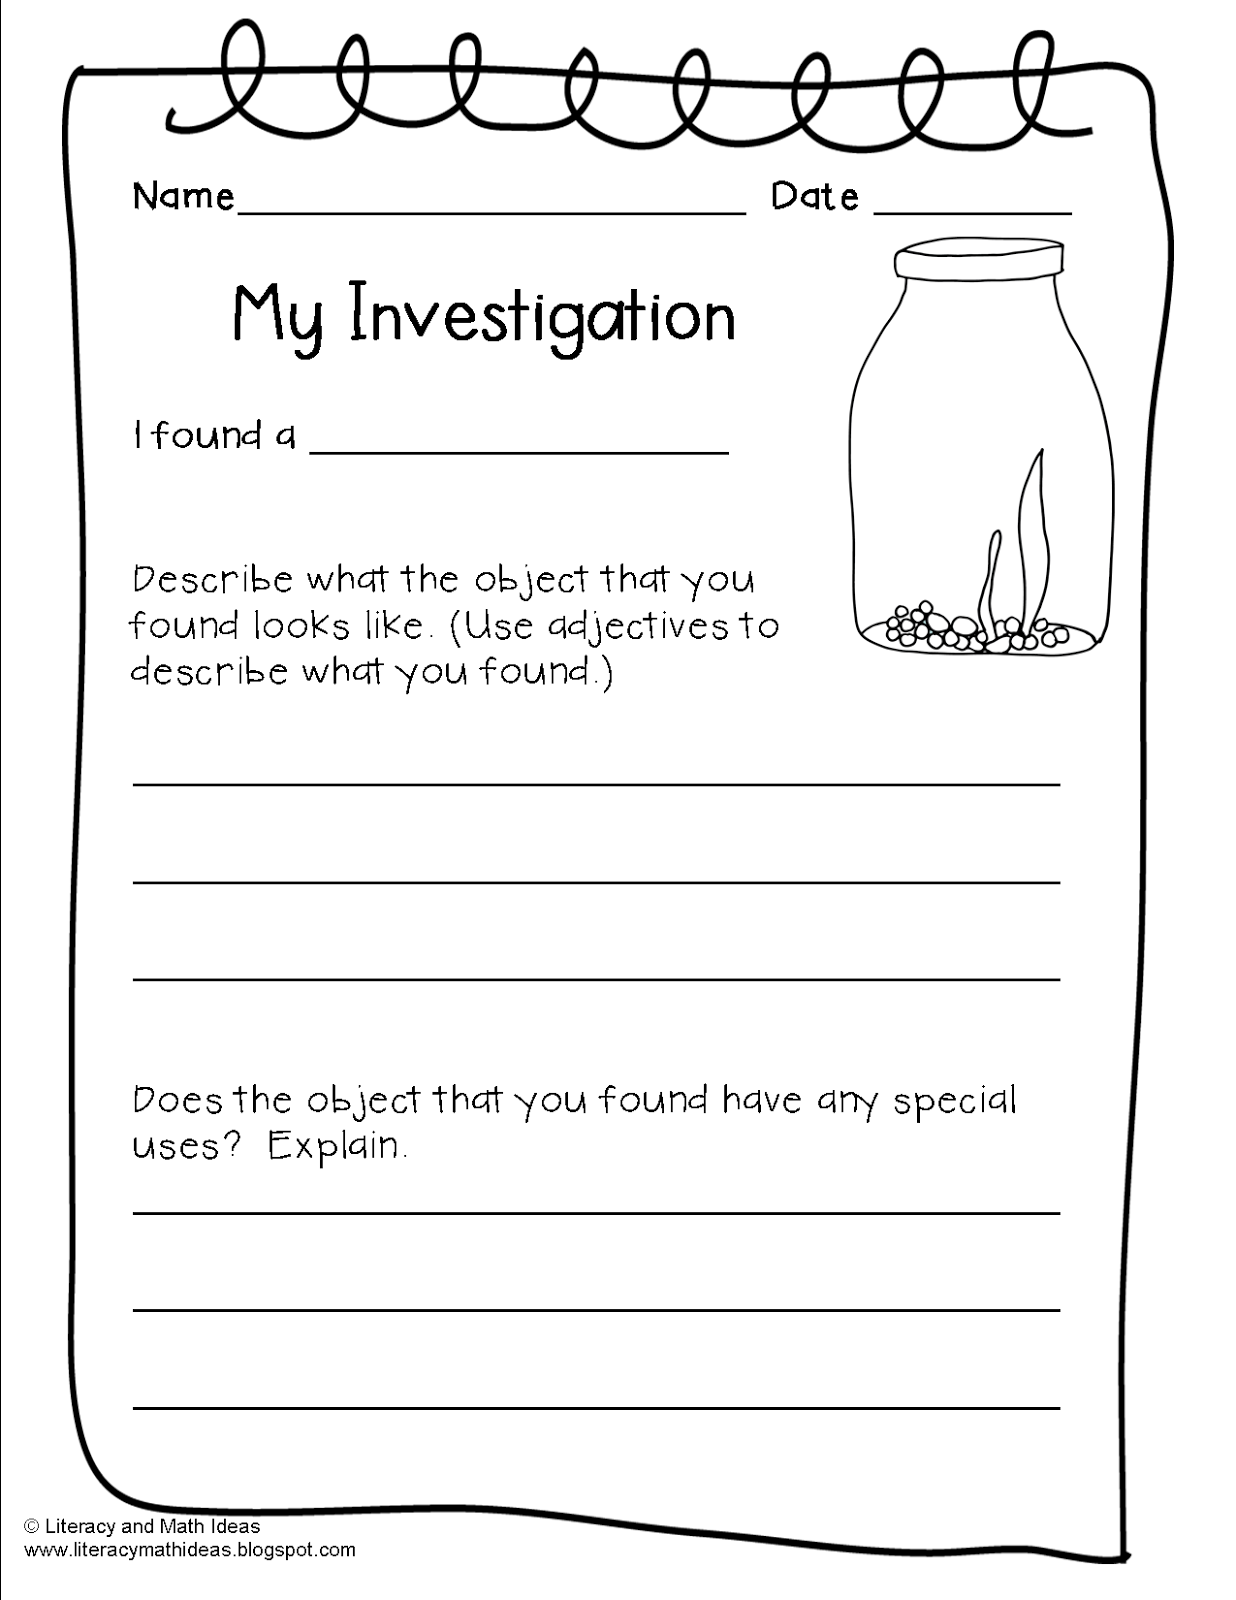 Literacy Amp Math Ideas Integrate Reading Social Stu S Science And Writing With A Fossil And